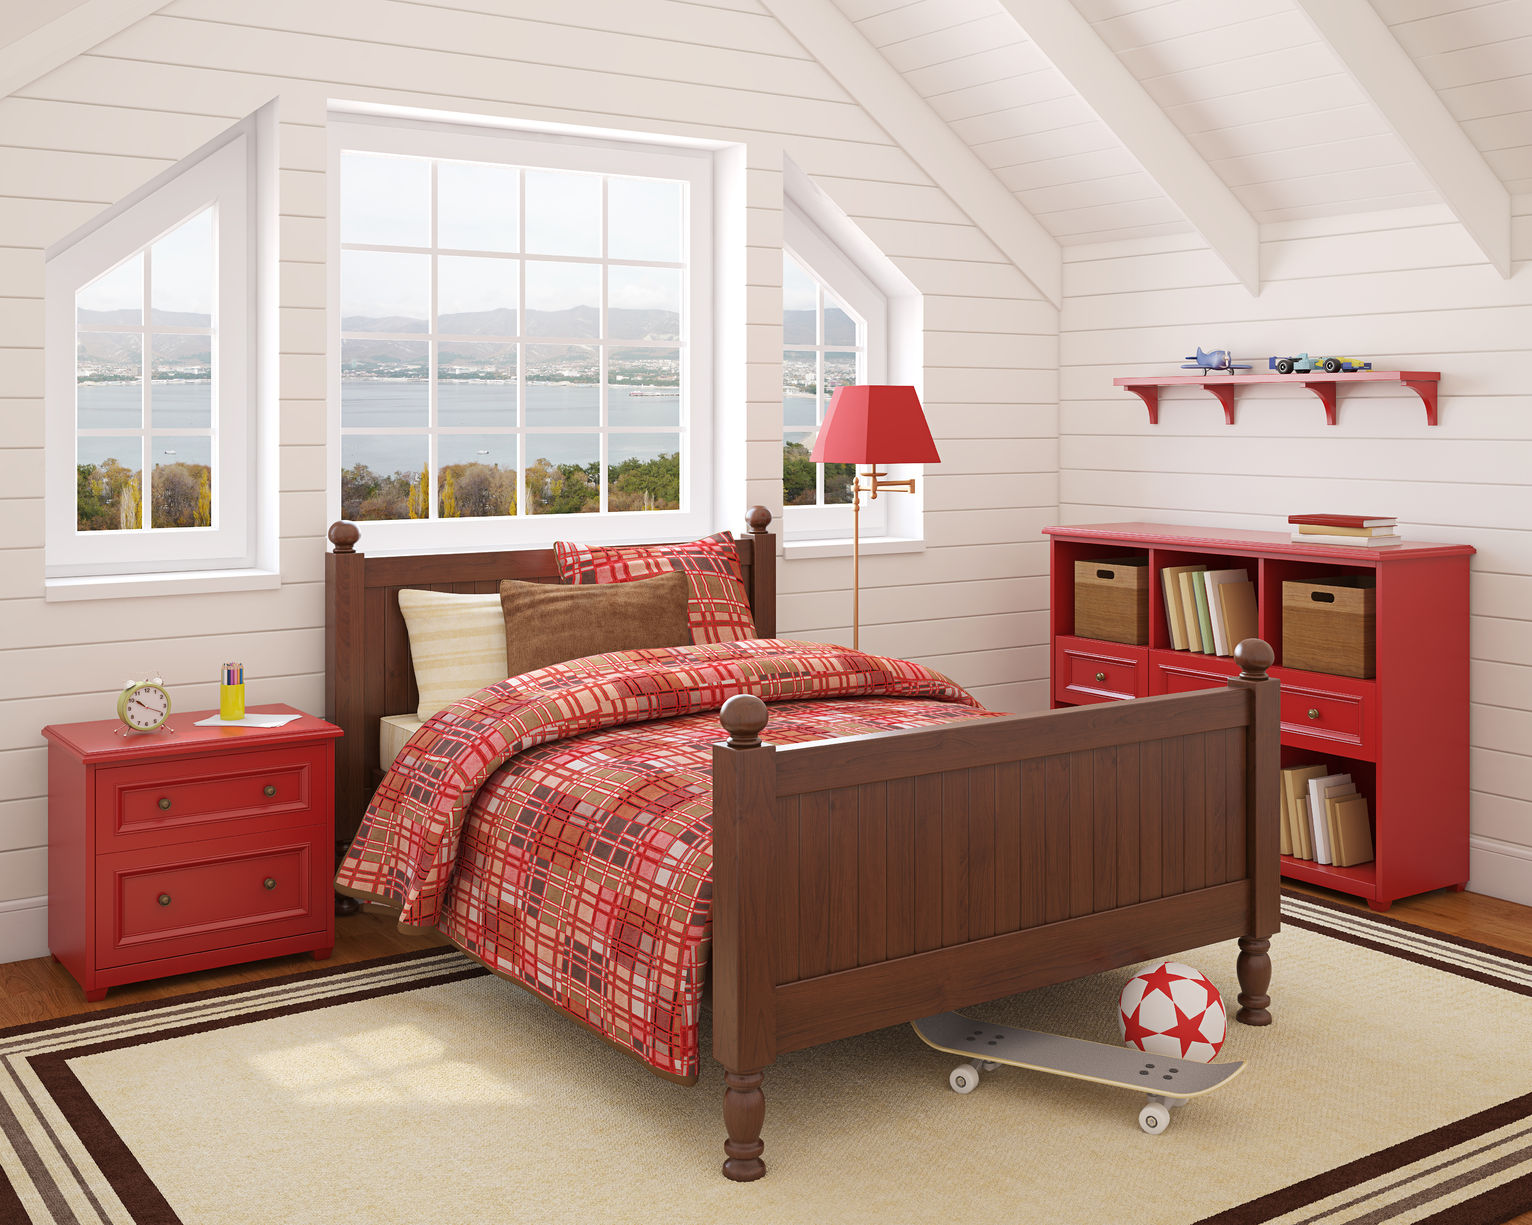 boy's attic bedroom